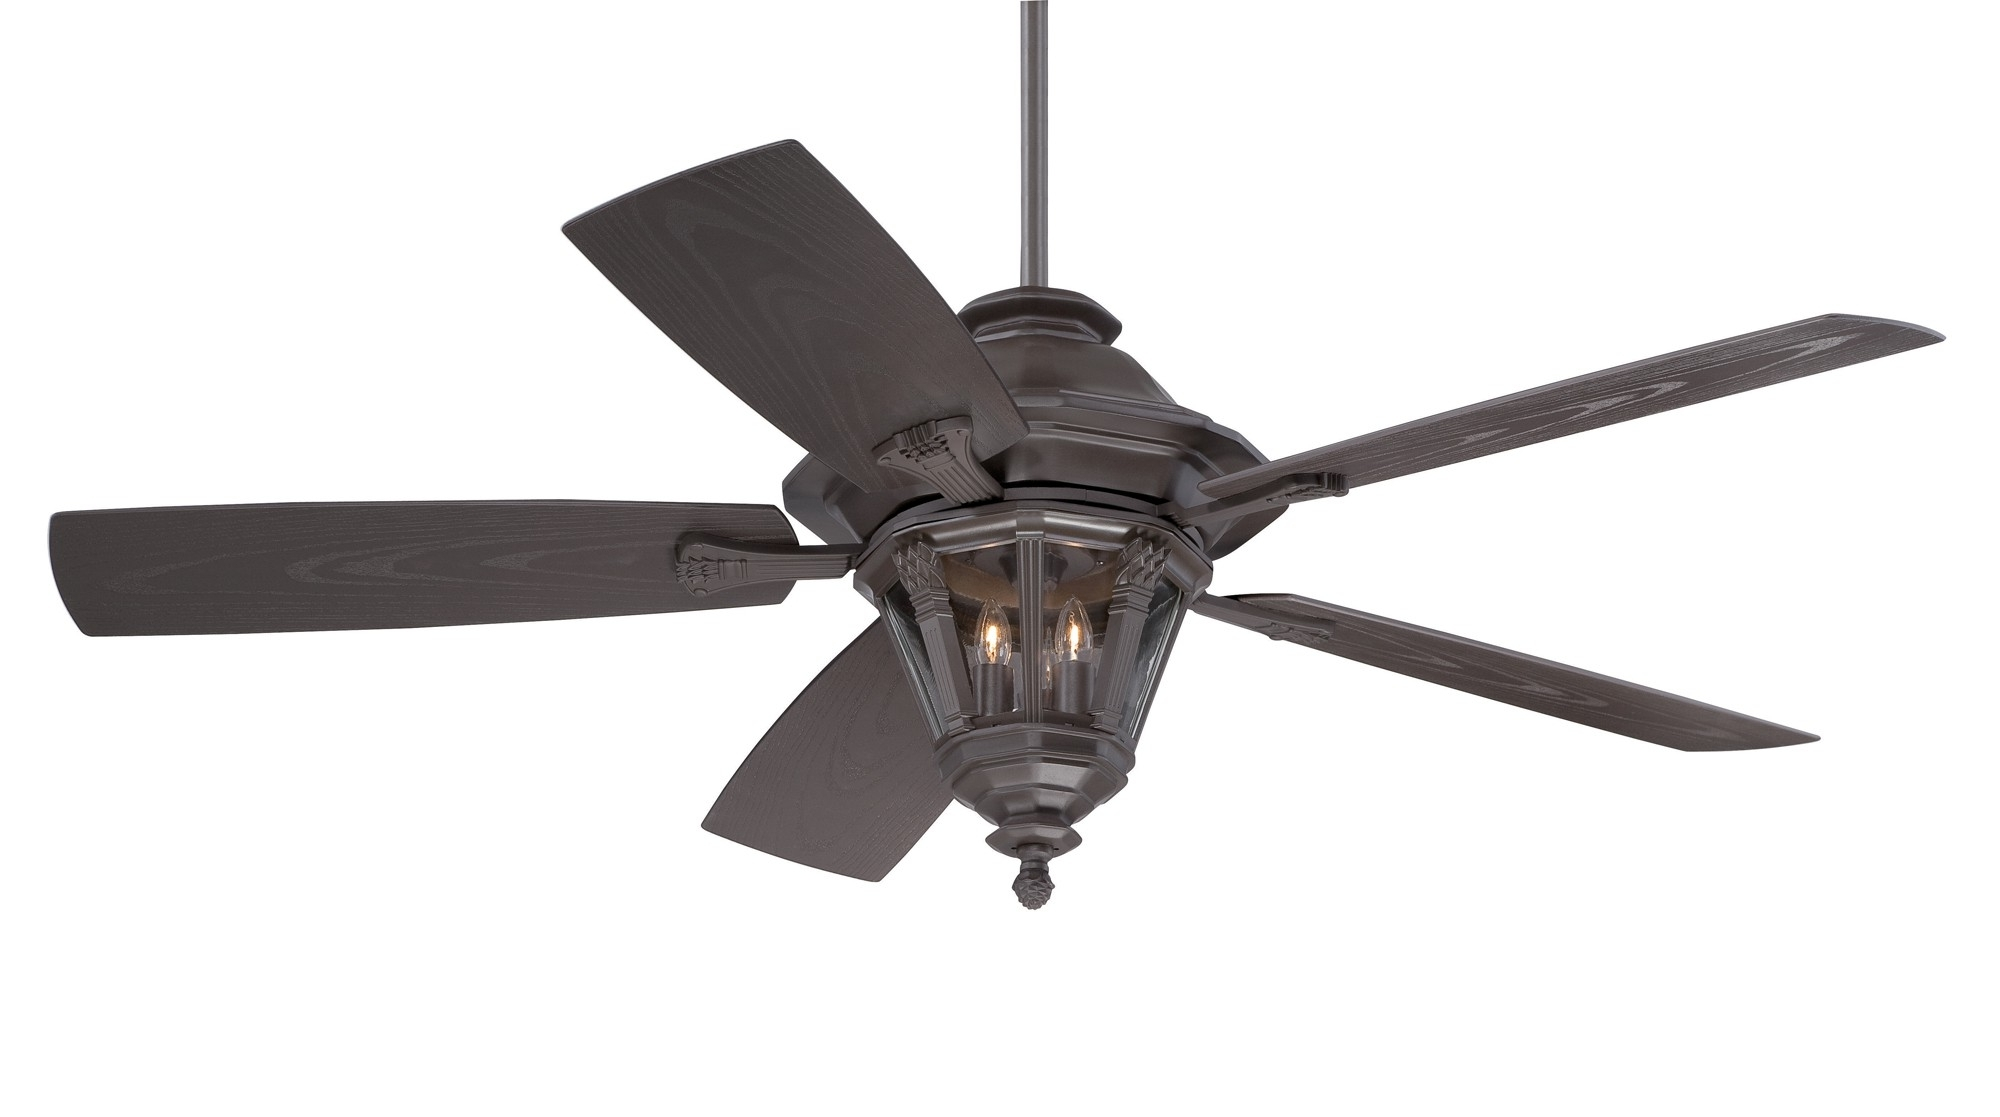 Fashionable Modern Outdoor Ceiling Fans With Lights Inside Outdoor Ceiling Fan With Lights – Outdoor Lighting (View 4 of 20)